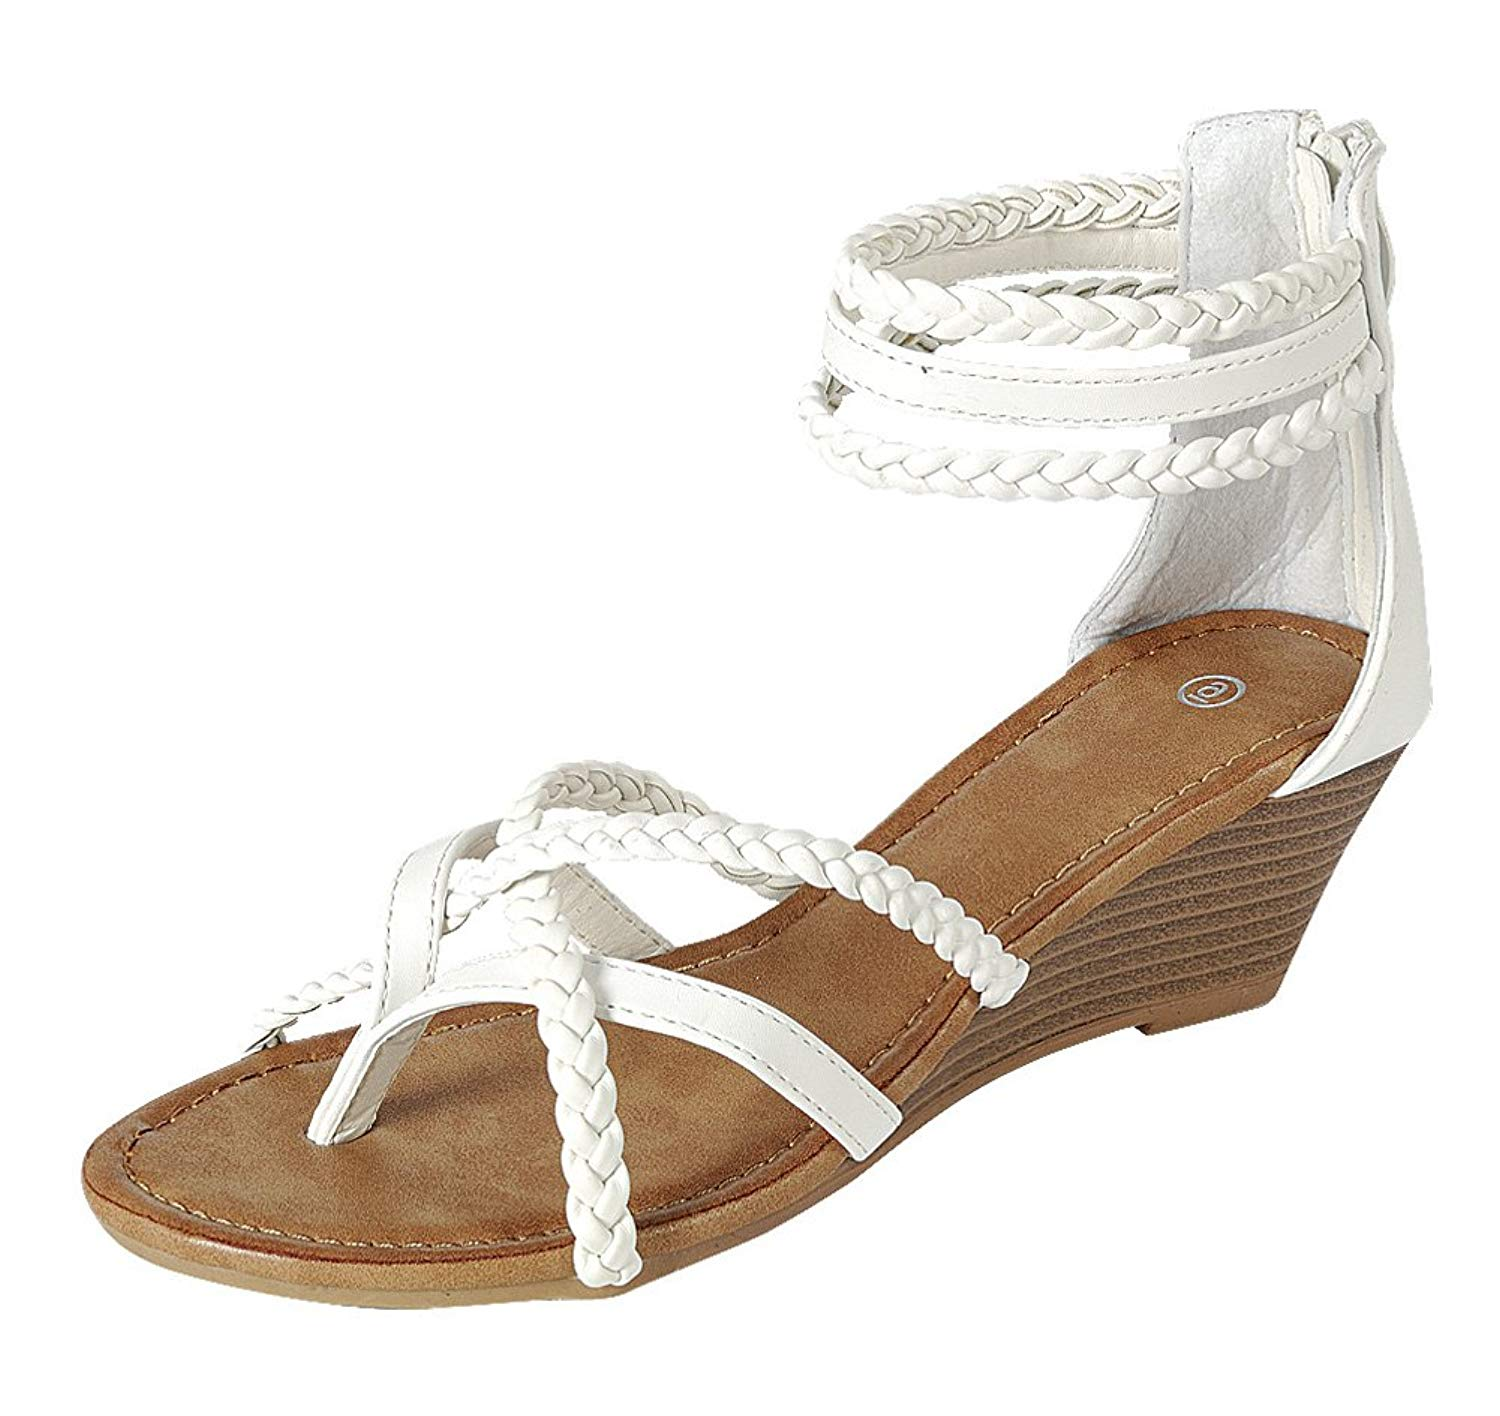 89d455d2cba3 Get Quotations · Cambridge Select Women s Back Zip Strappy Crisscross  Braided Ankle Thong Toe Wedge Sandal